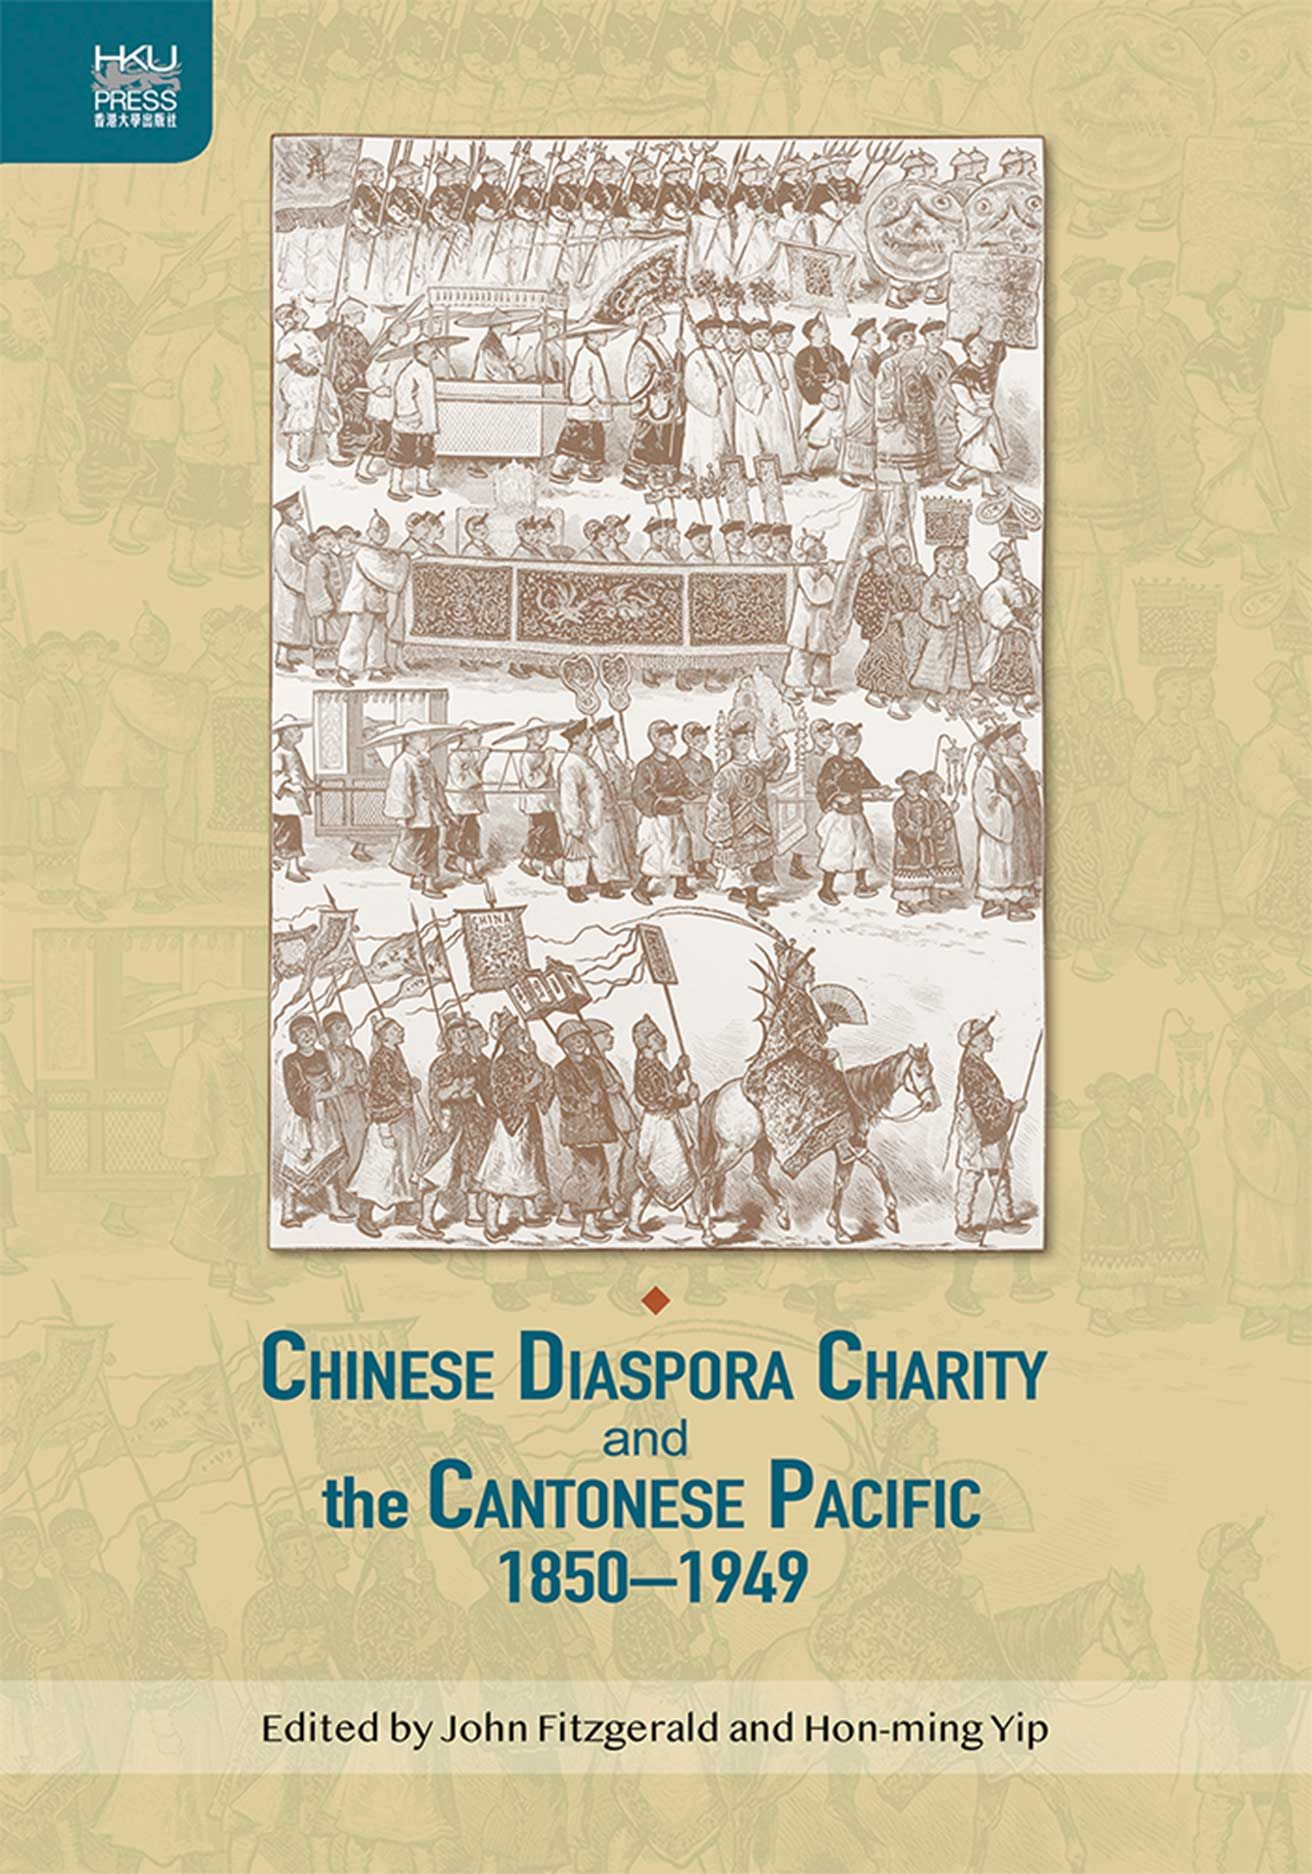 Chinese Diaspora Charity and the Cantonese Pacific, 1850–1949